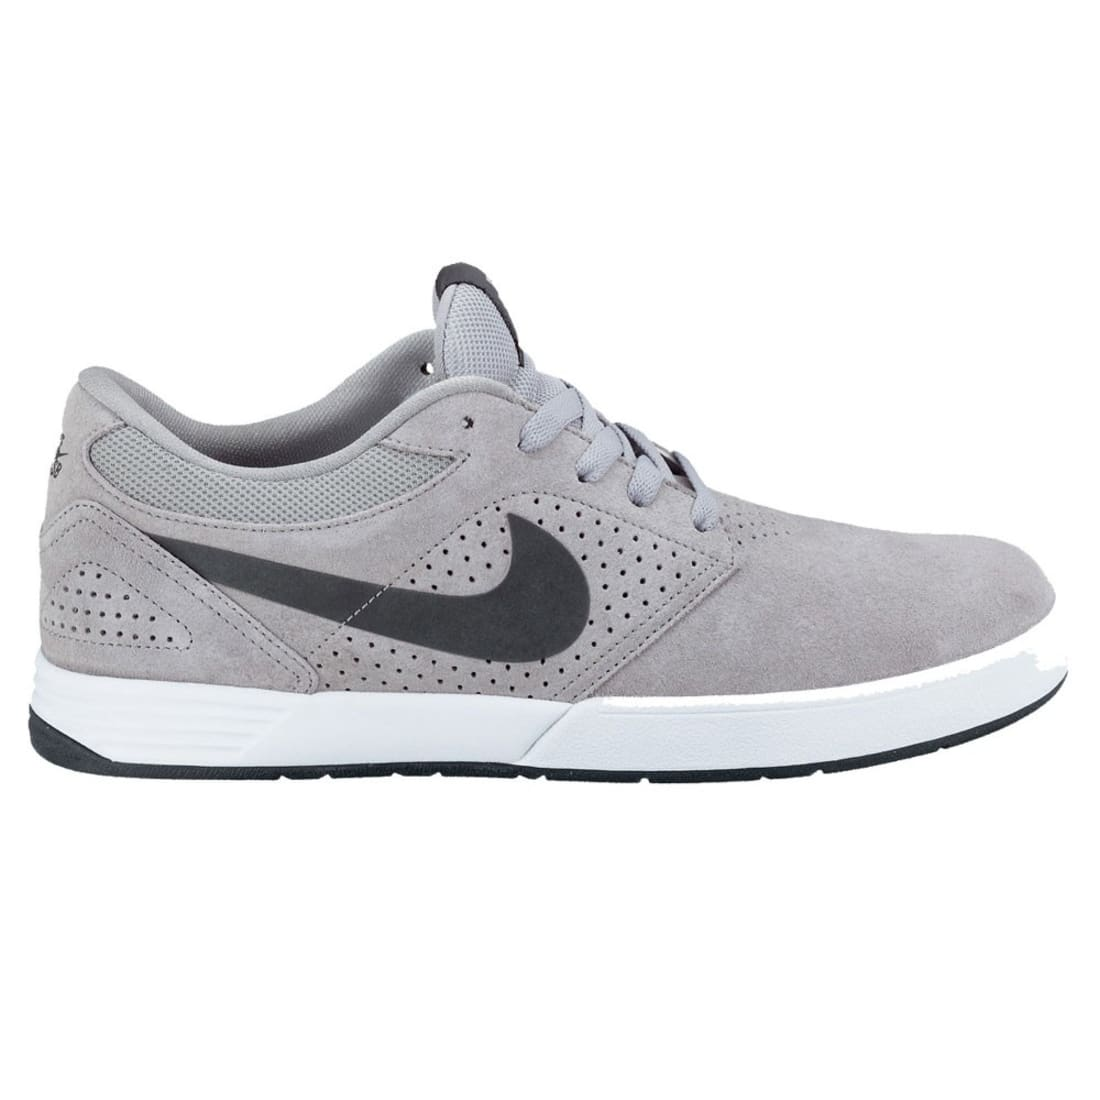 Nike SB Paul Rodriguez 5 | Nike | Sole Collector